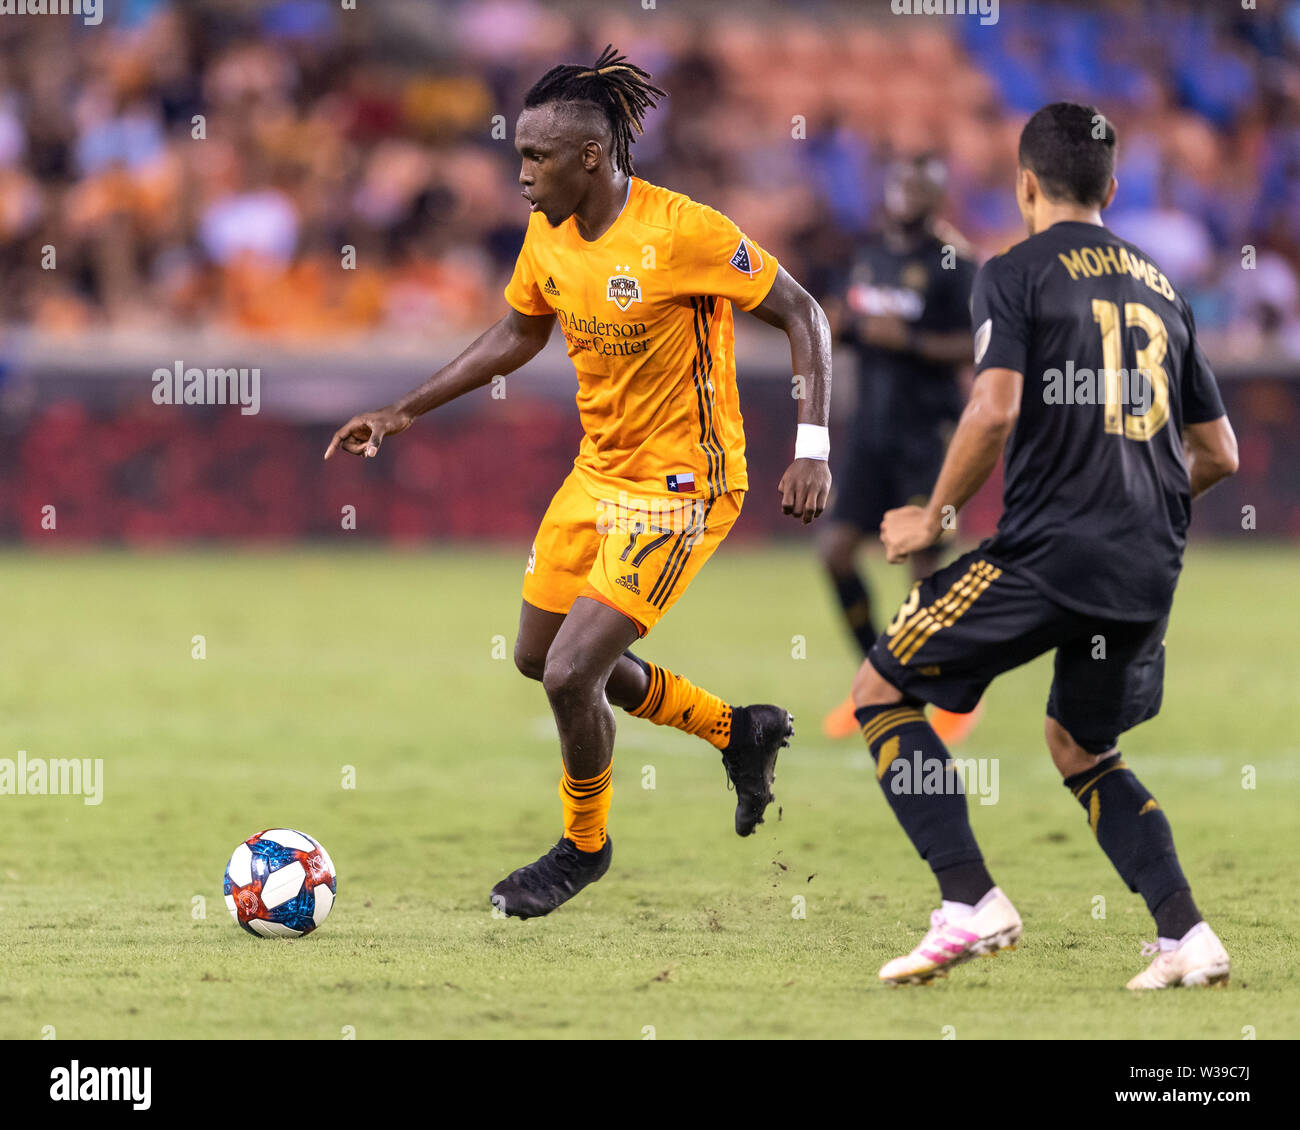 Houston, Texas, USA. 12th July, 2019. Houston Dynamo forward Alberth Elis (17) moves the ball during a match between Los Angeles FC and Houston Dynamo at BBVA Stadium in Houston, Texas. The final LAFC wins 3-1. Maria Lysaker/CSM/Alamy Live News - Stock Image